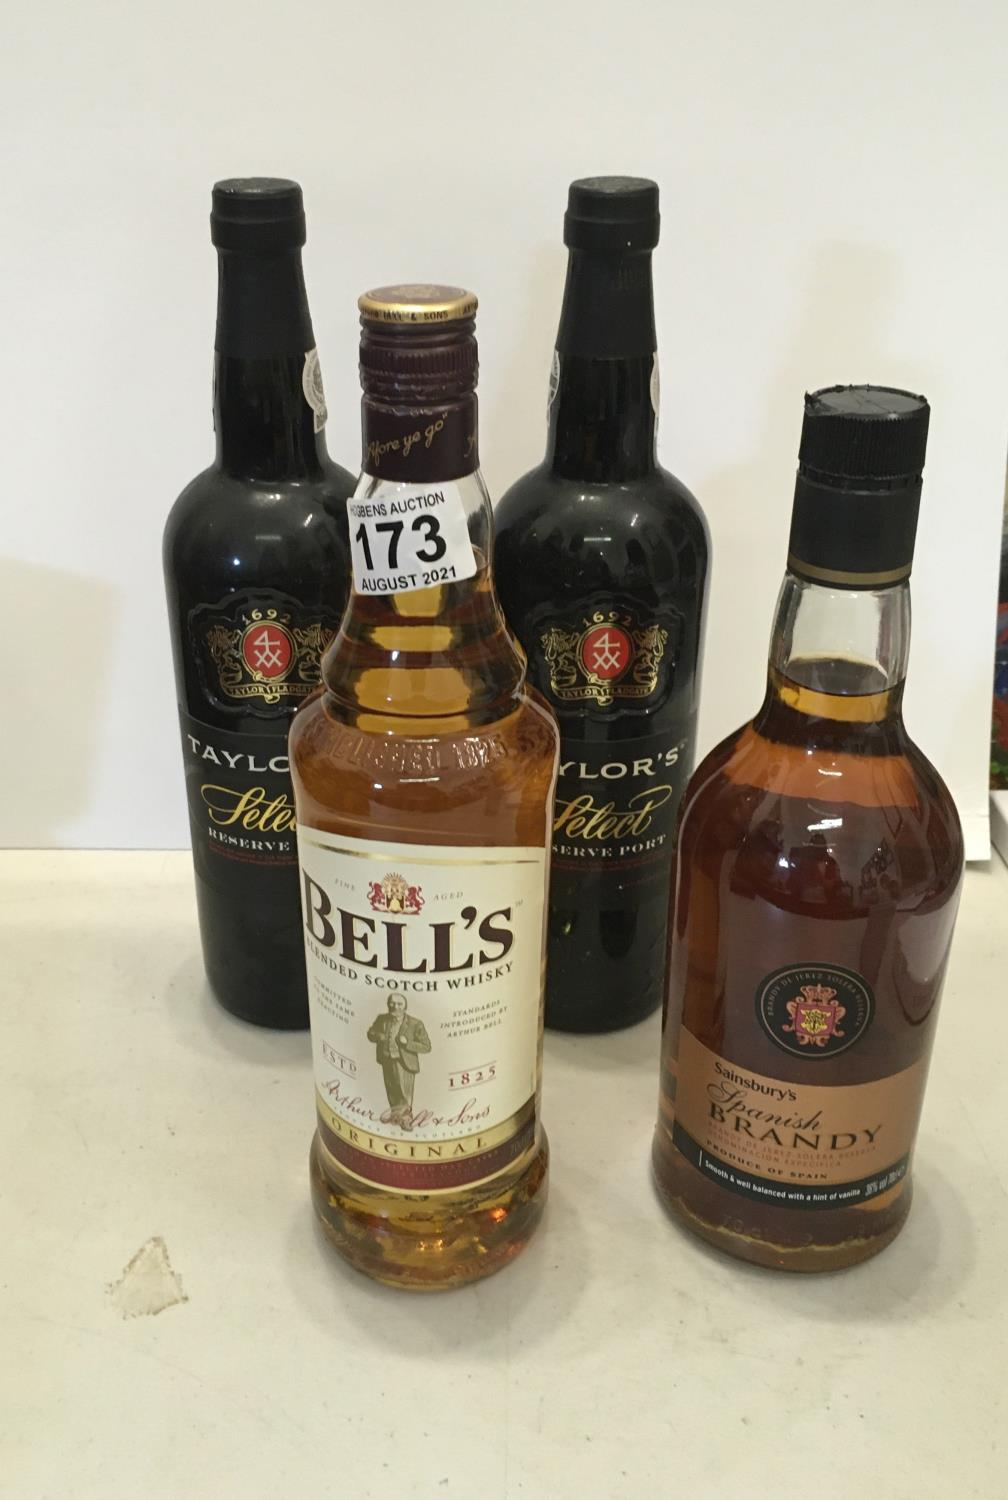 Single bottle of Bells Whisky 75cl un-opened, single bottle of Spanish Brandy 70cl un-opened, and